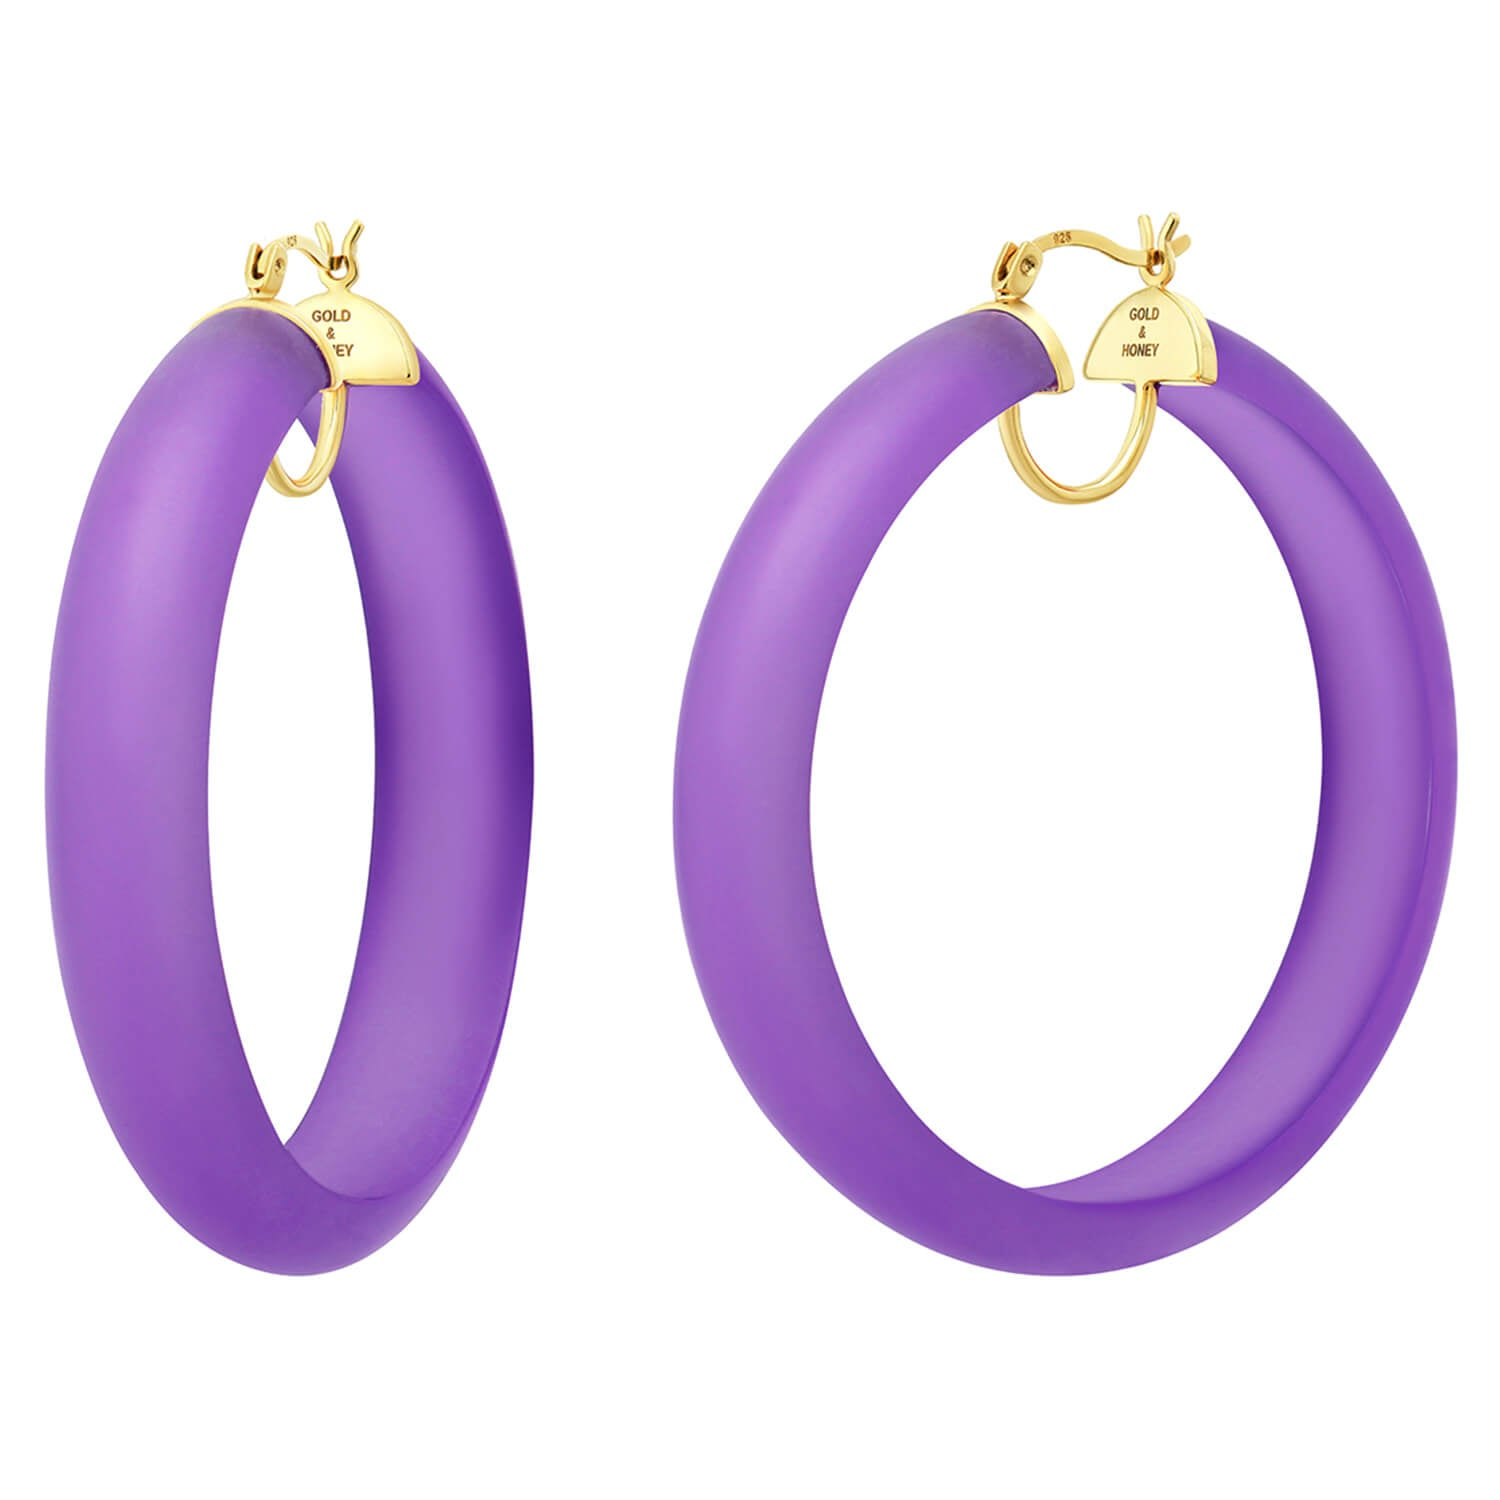 PRE-ORDER - Frosted Lucite Hoops in Purple